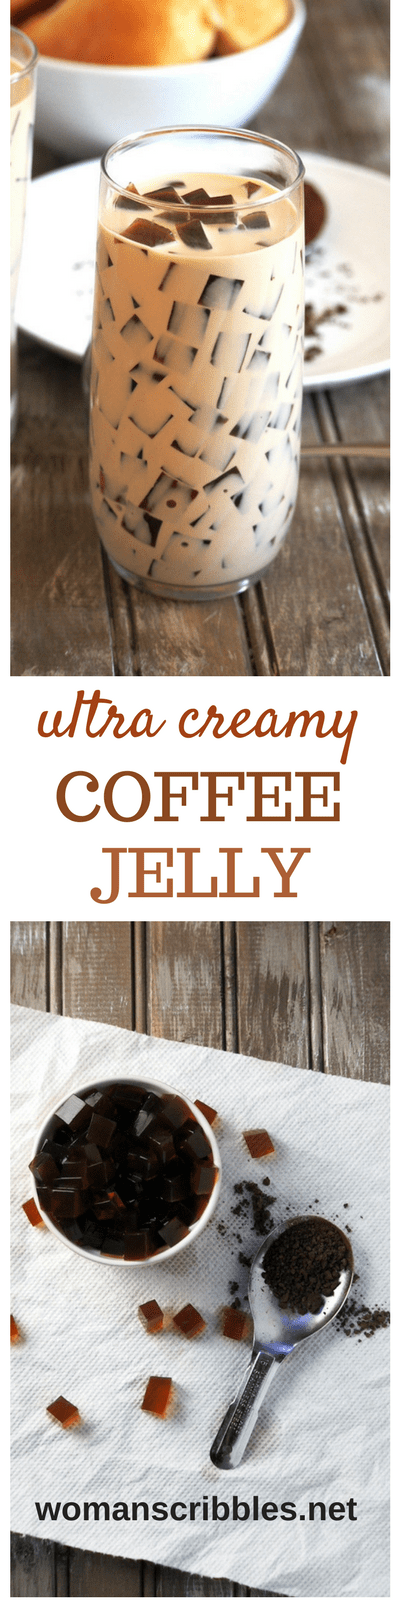 Coffee Jelly is a delicious coffee-based dessert made of coffee-flavored jelly cubes in a thick and delightful coffee-infused cream. #coffeejelly #coffeedesserts